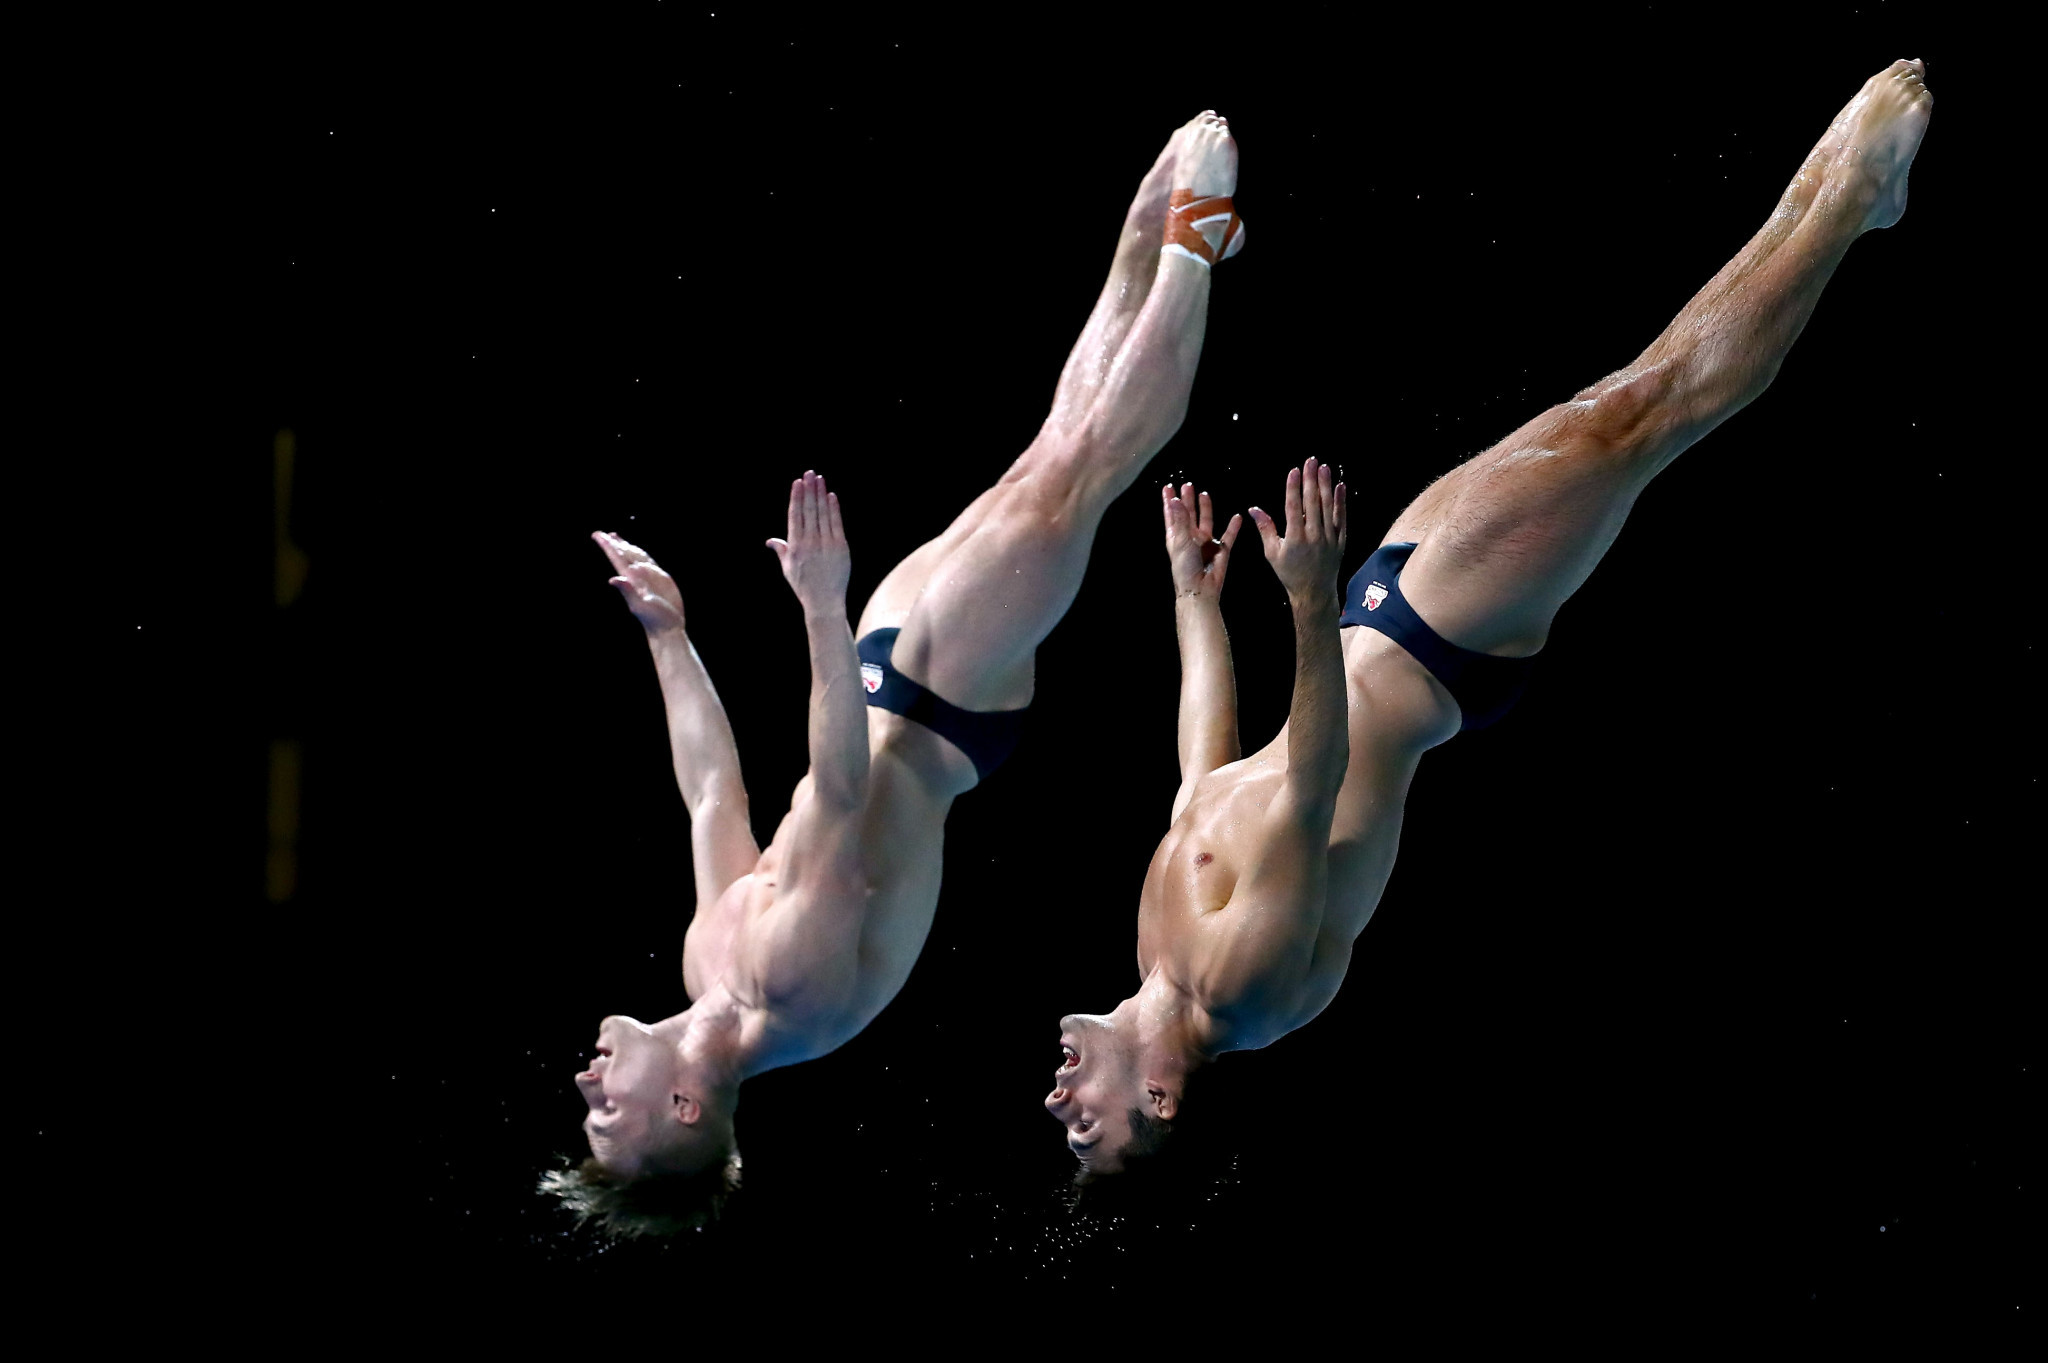 Reigning champions defend Commonwealth Games 3m synchronised springboard title as Laugher completes golden hat-trick